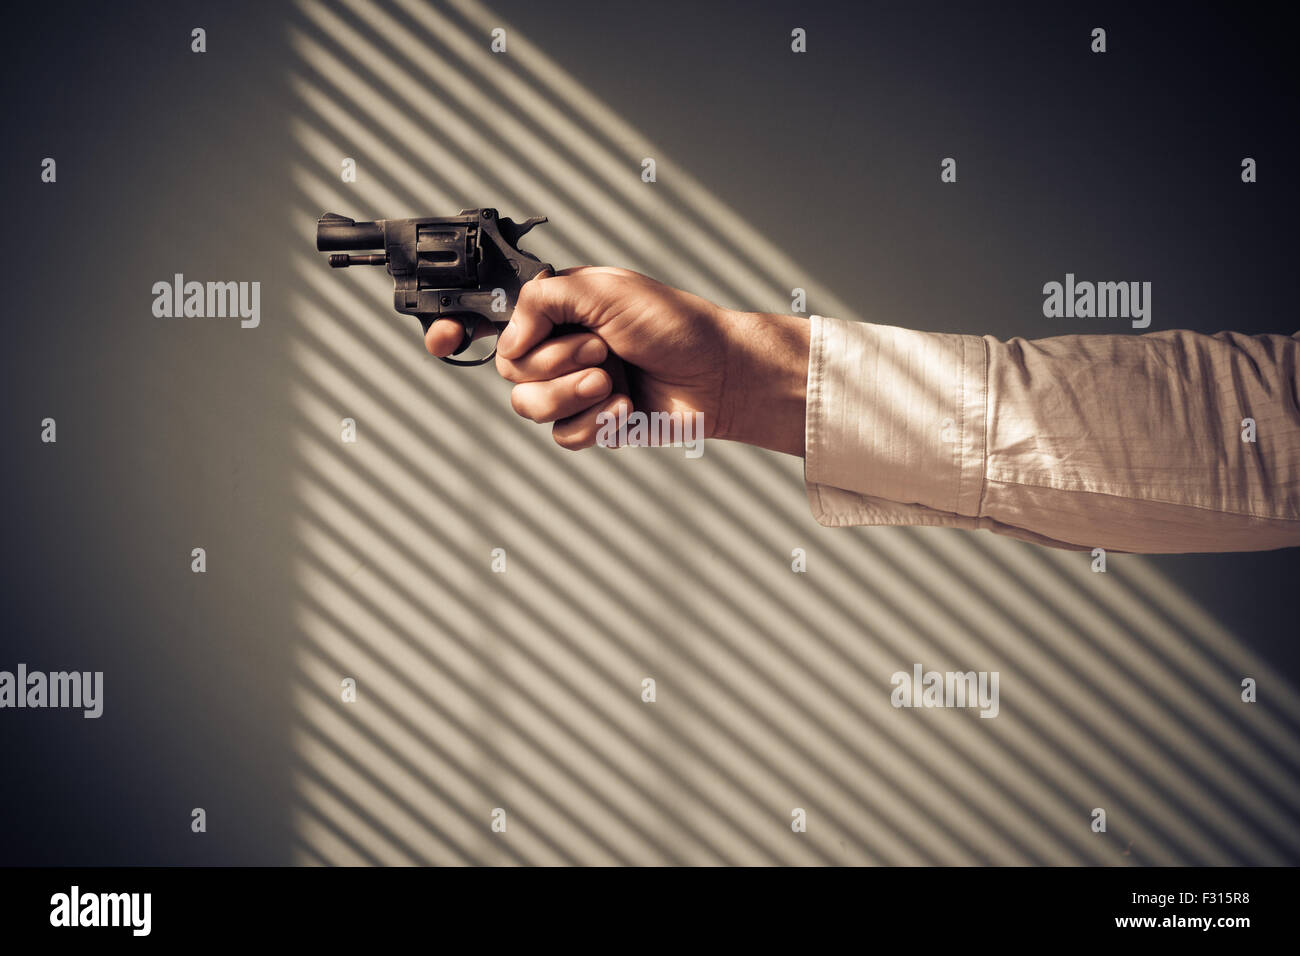 Man is pointing a revolver at a window with shadows from the blinds - Stock Image